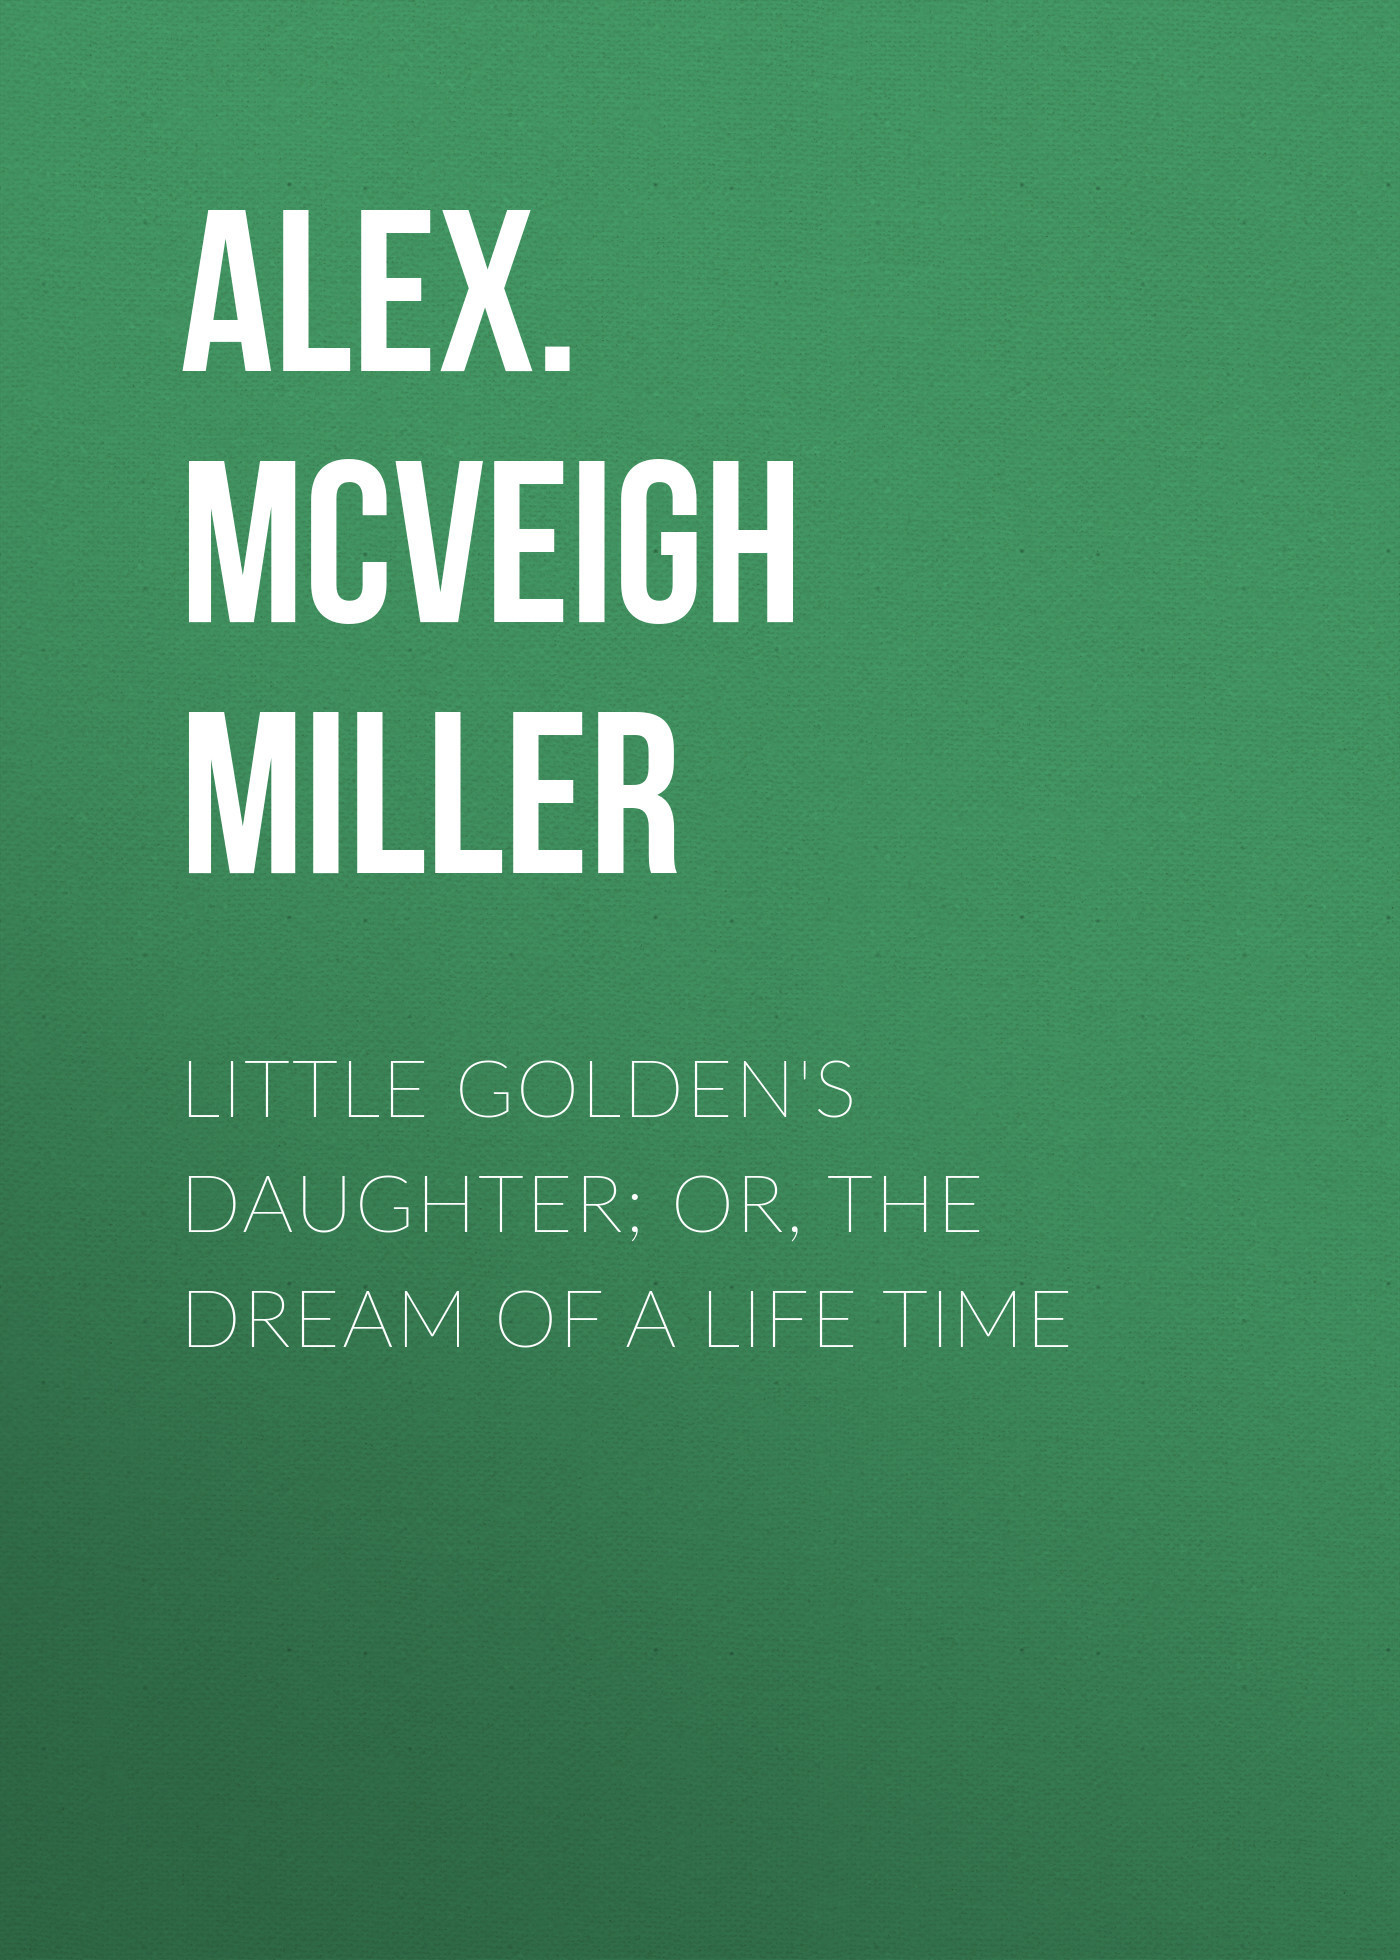 Alex. McVeigh Miller Little Golden's Daughter; or, The Dream of  Life Time